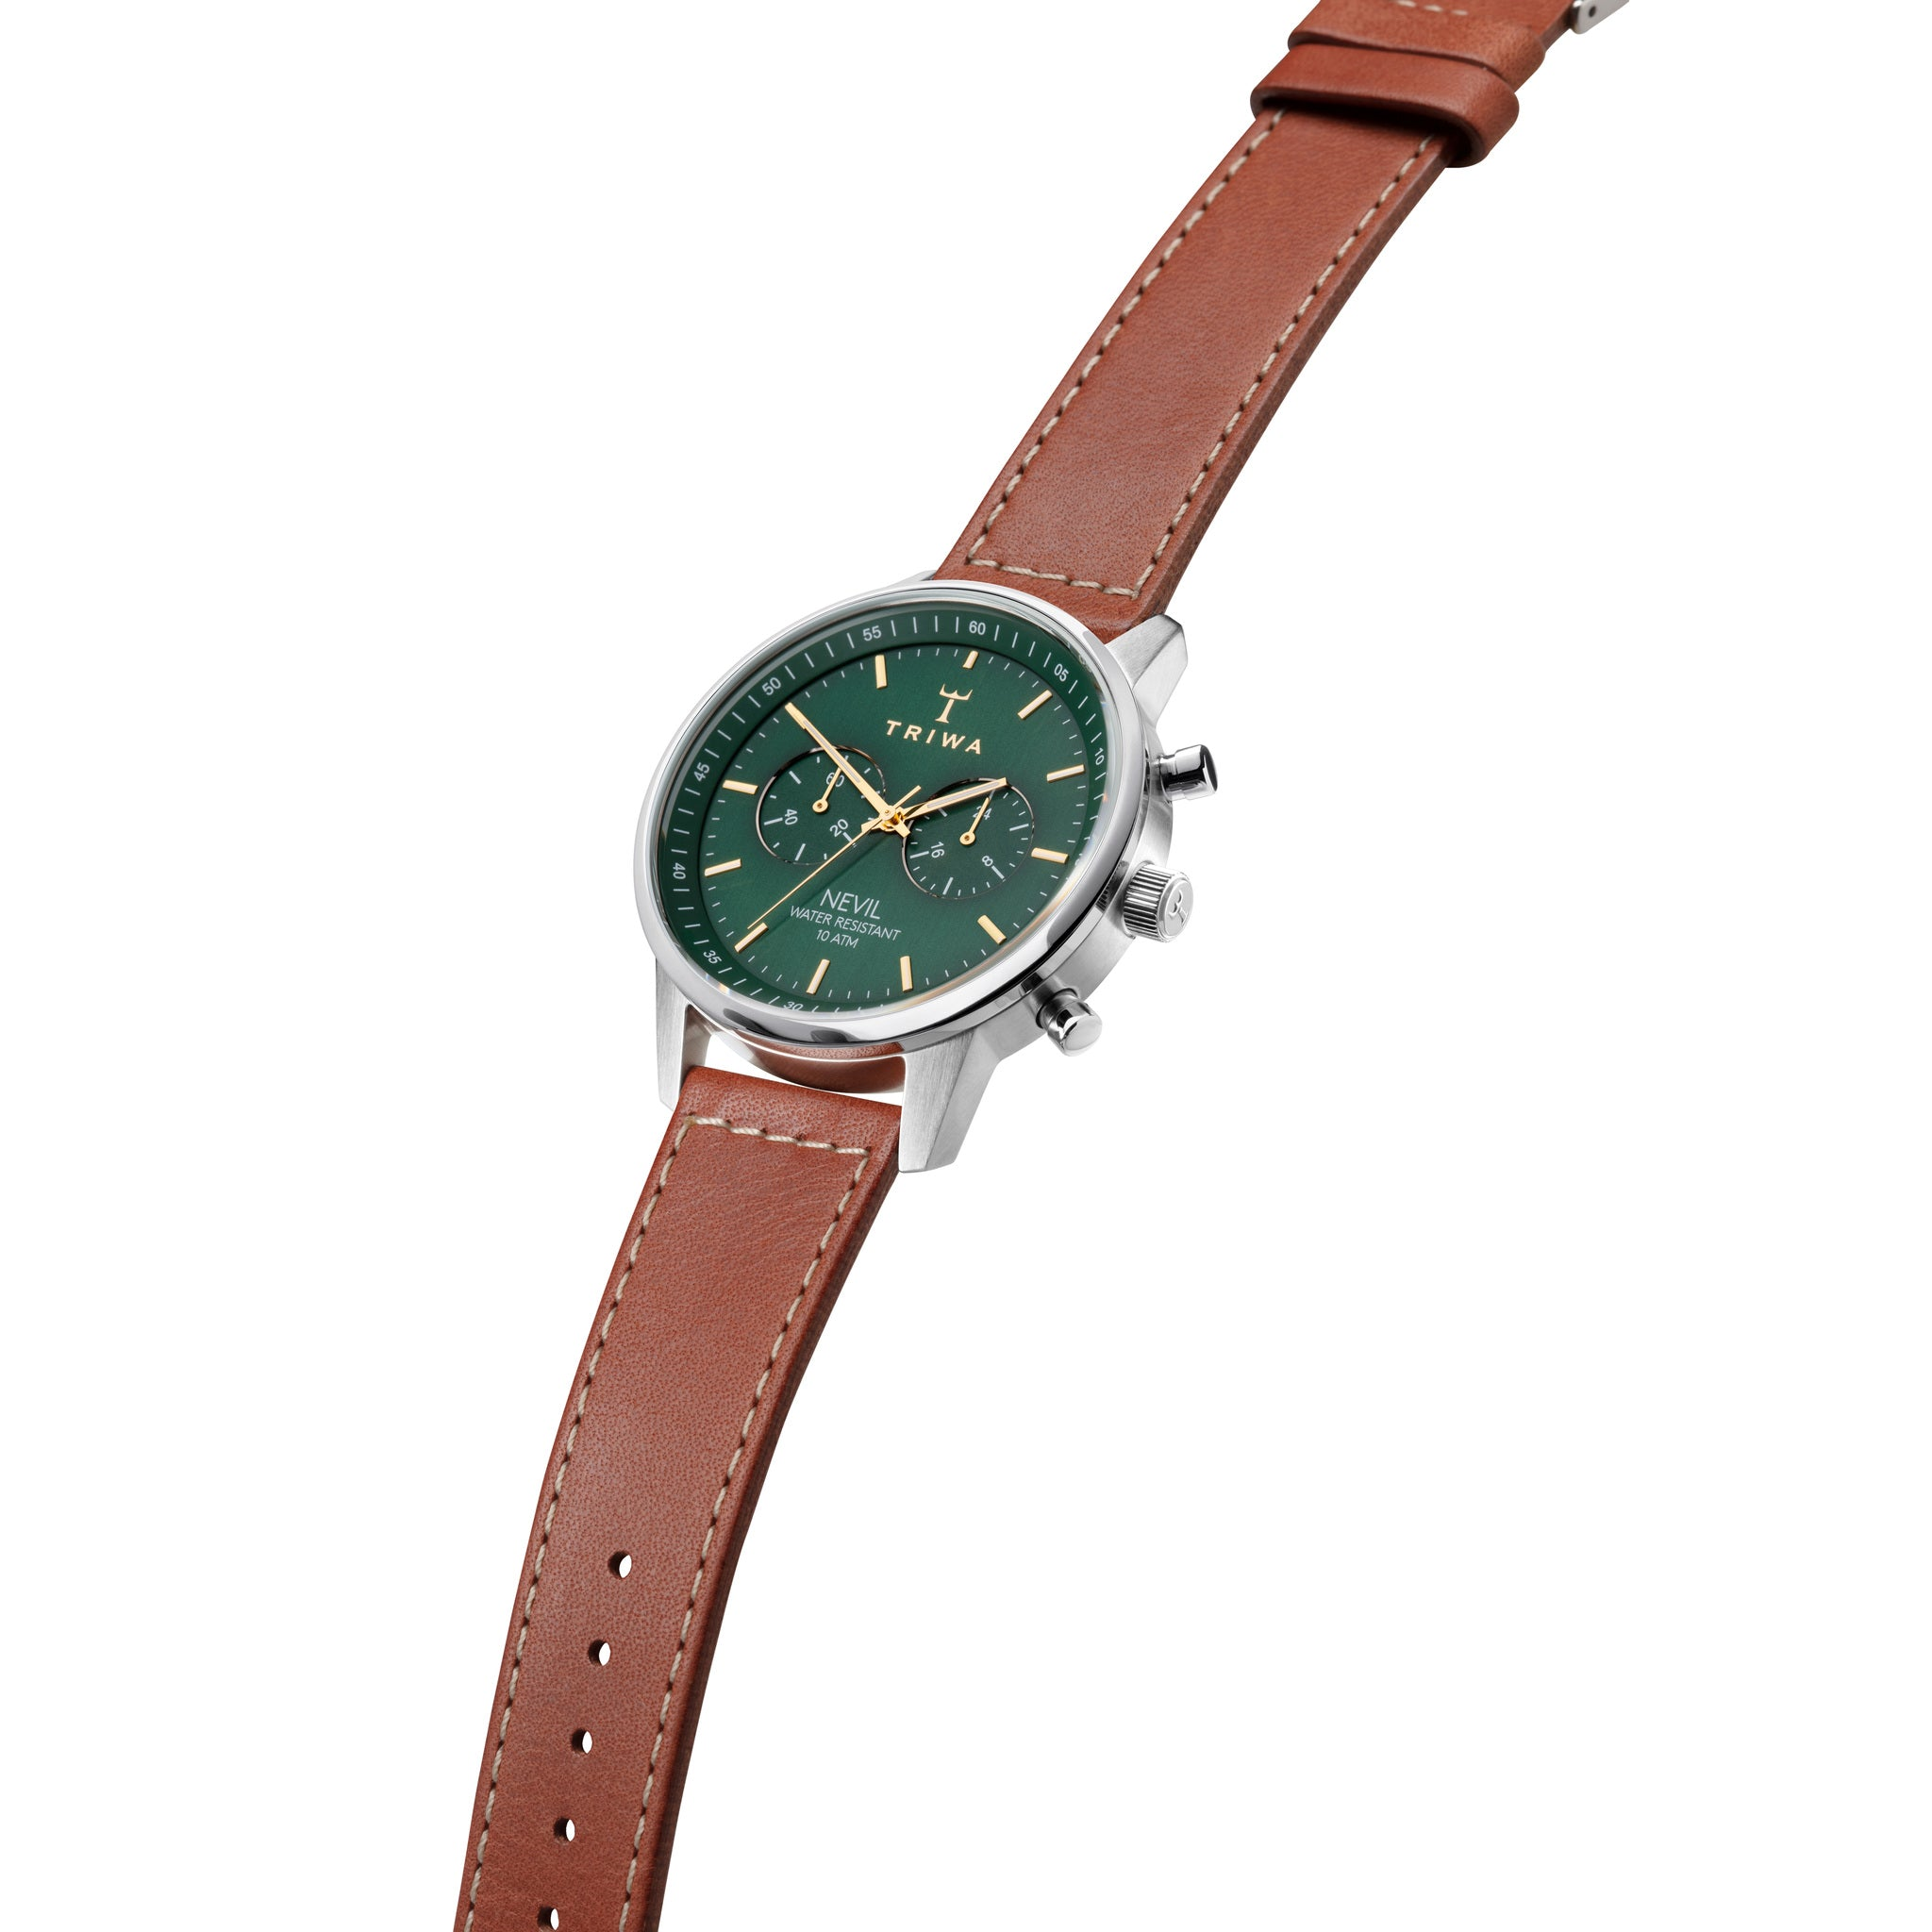 Supreme quality Swedish-made and designed watch in brushed steel with green face and brown leather strap, designed by Stocholkm-based Time Lords Triwa.